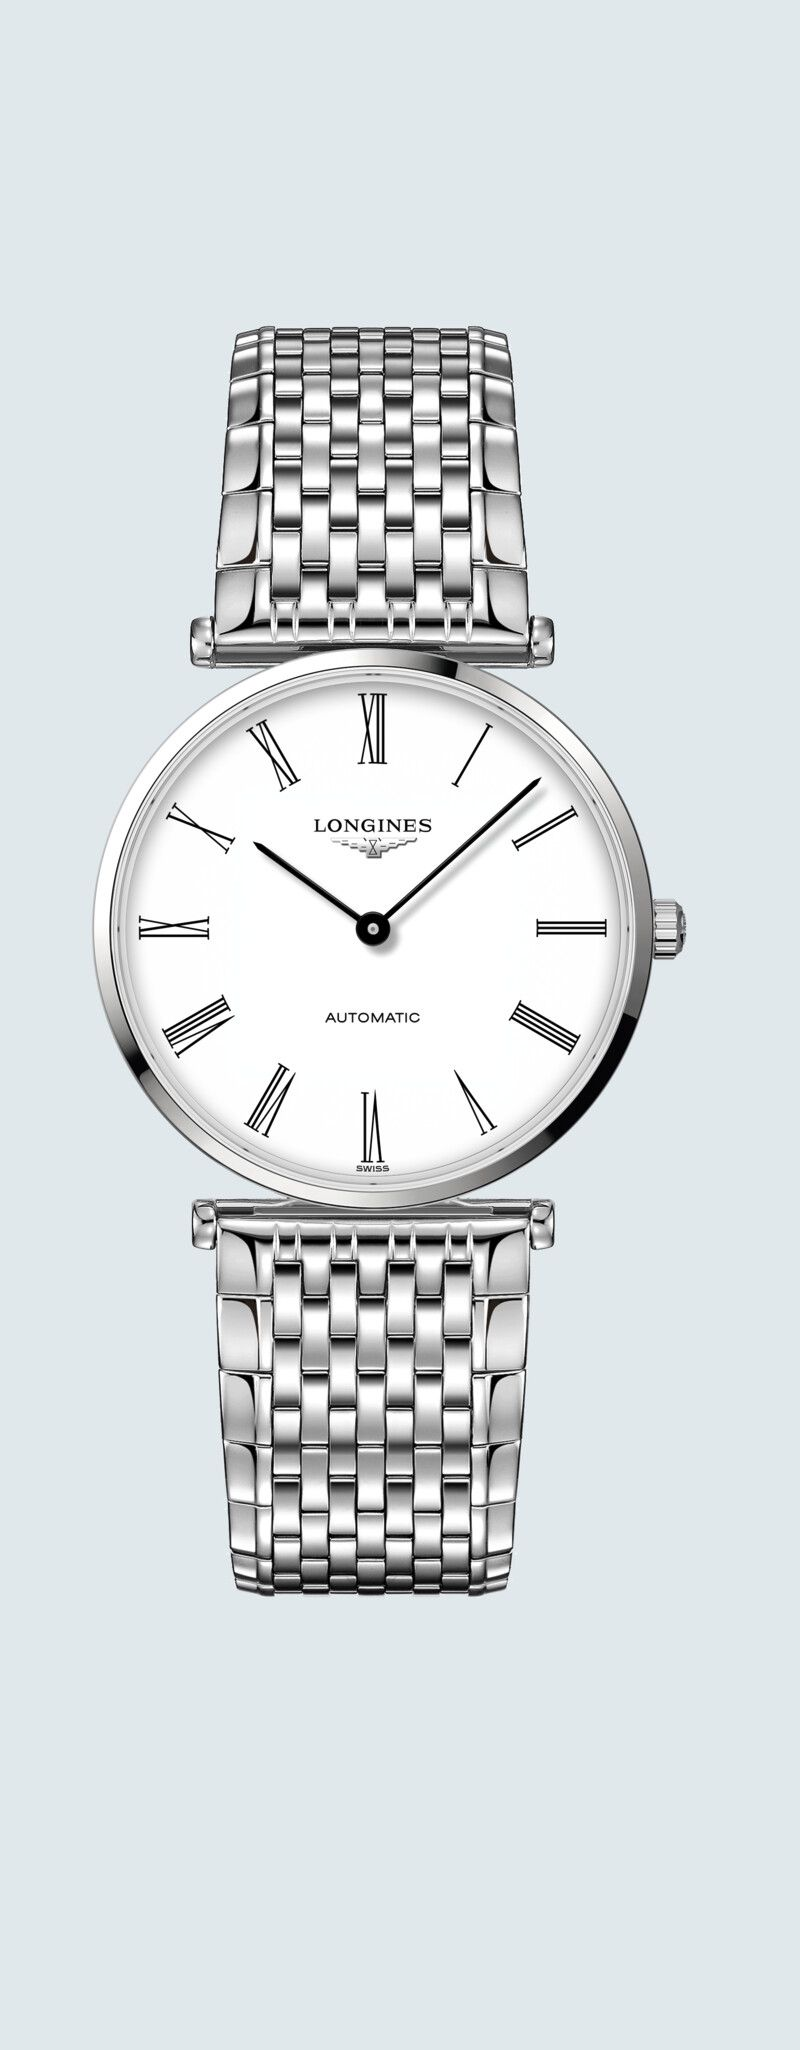 36.00 mm Stainless steel case with White dial and Stainless steel strap - case zoom view